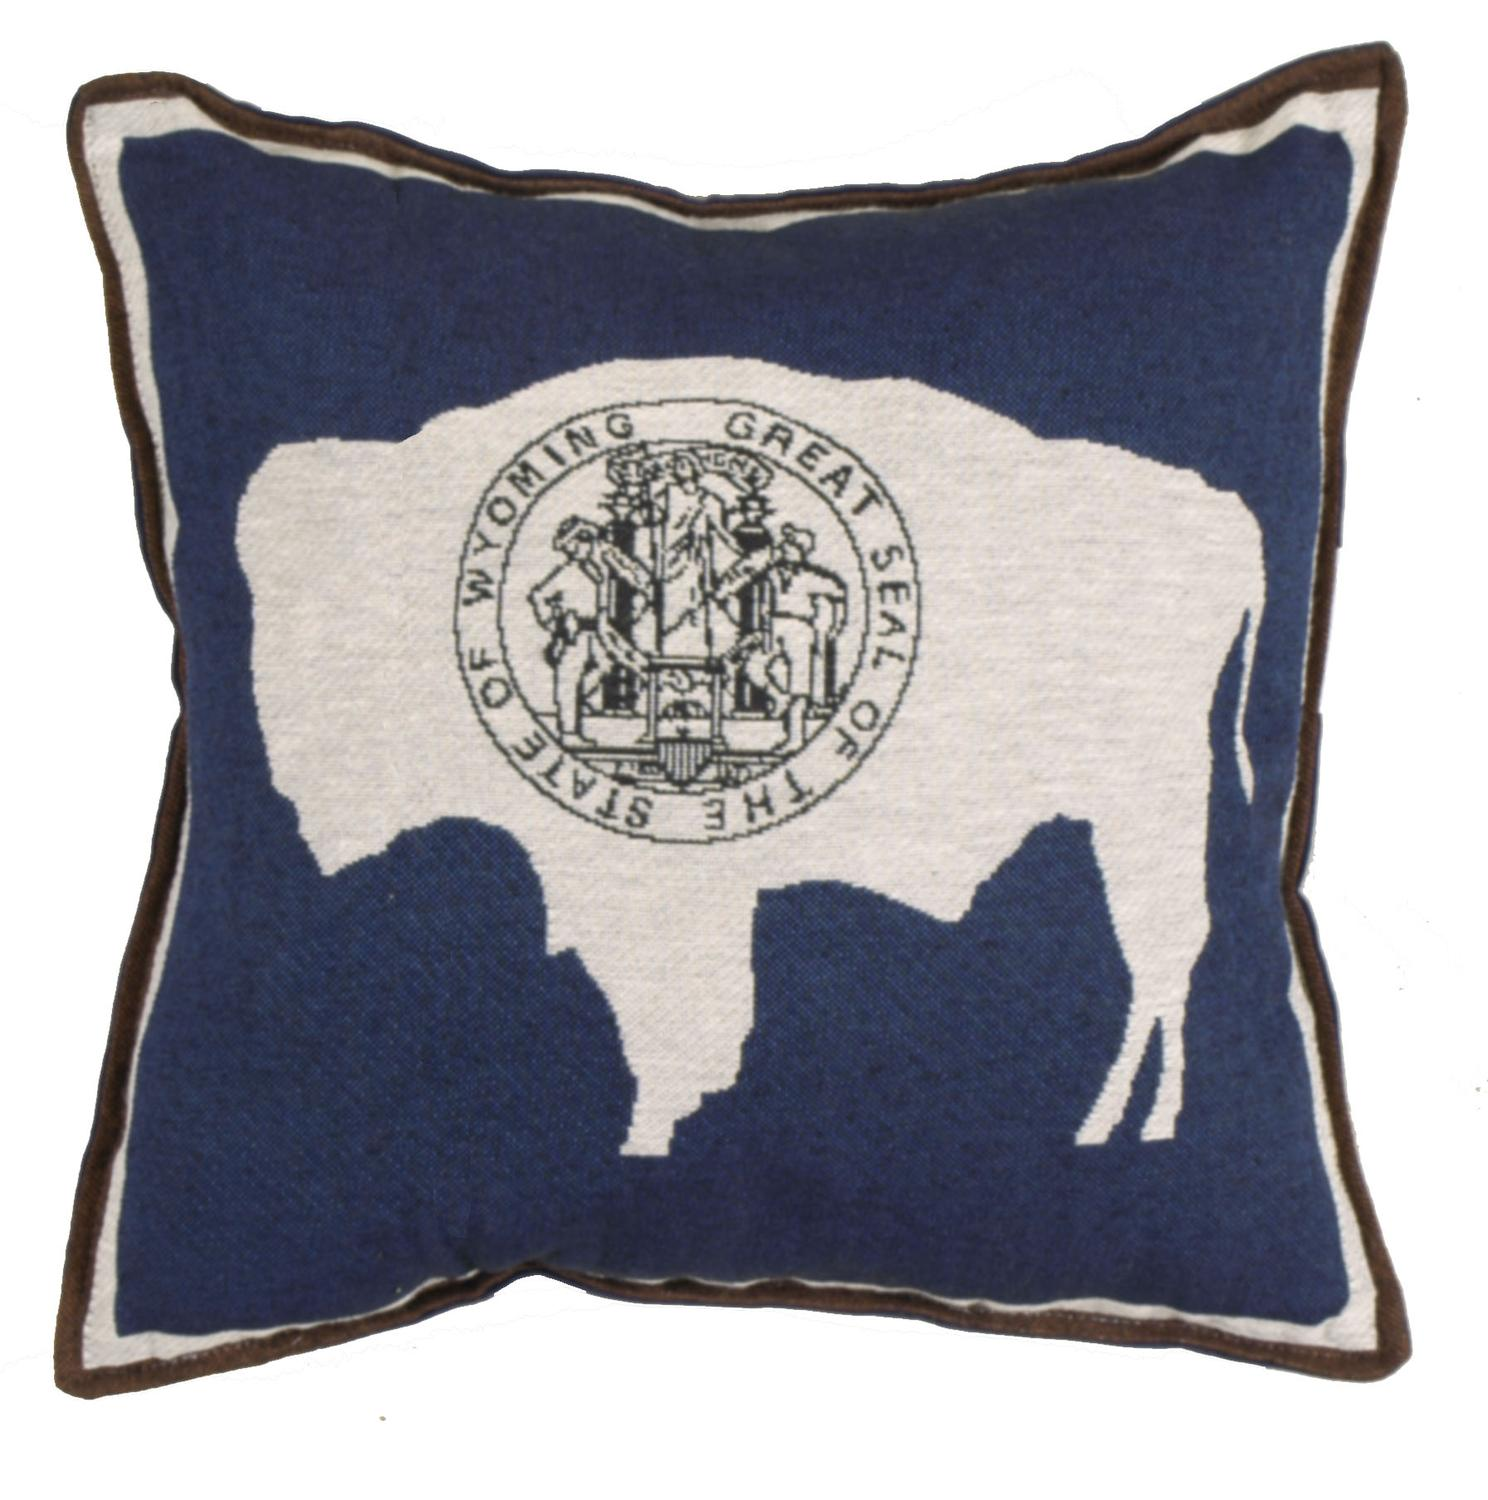 Set of 2 State of Wyoming Flag Square Decorative Tapestry Throw Pillows 17""